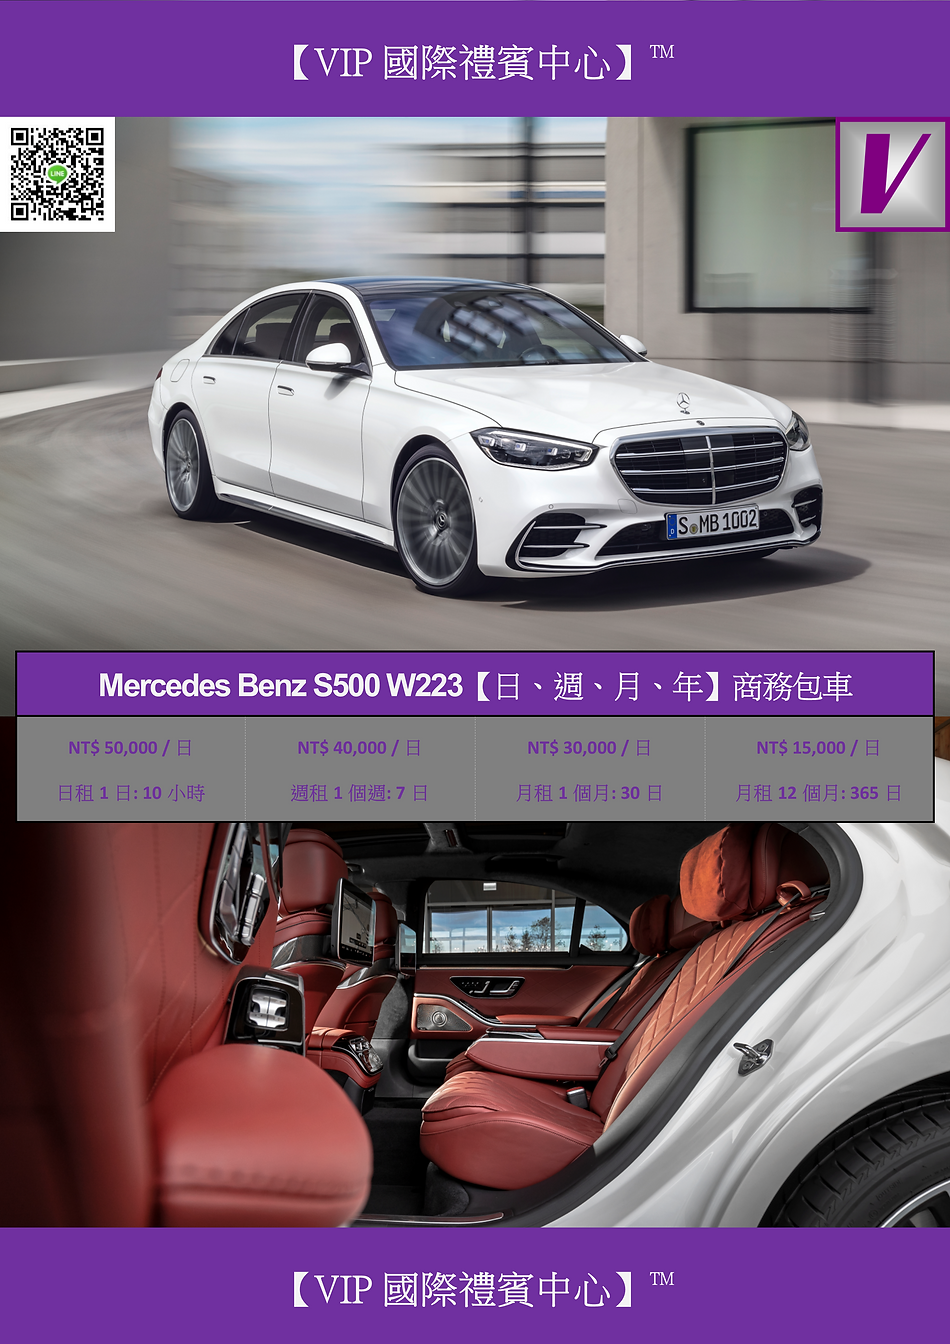 VIP國際禮賓中心 MERCEDES BENZ S500 W223 DM.png